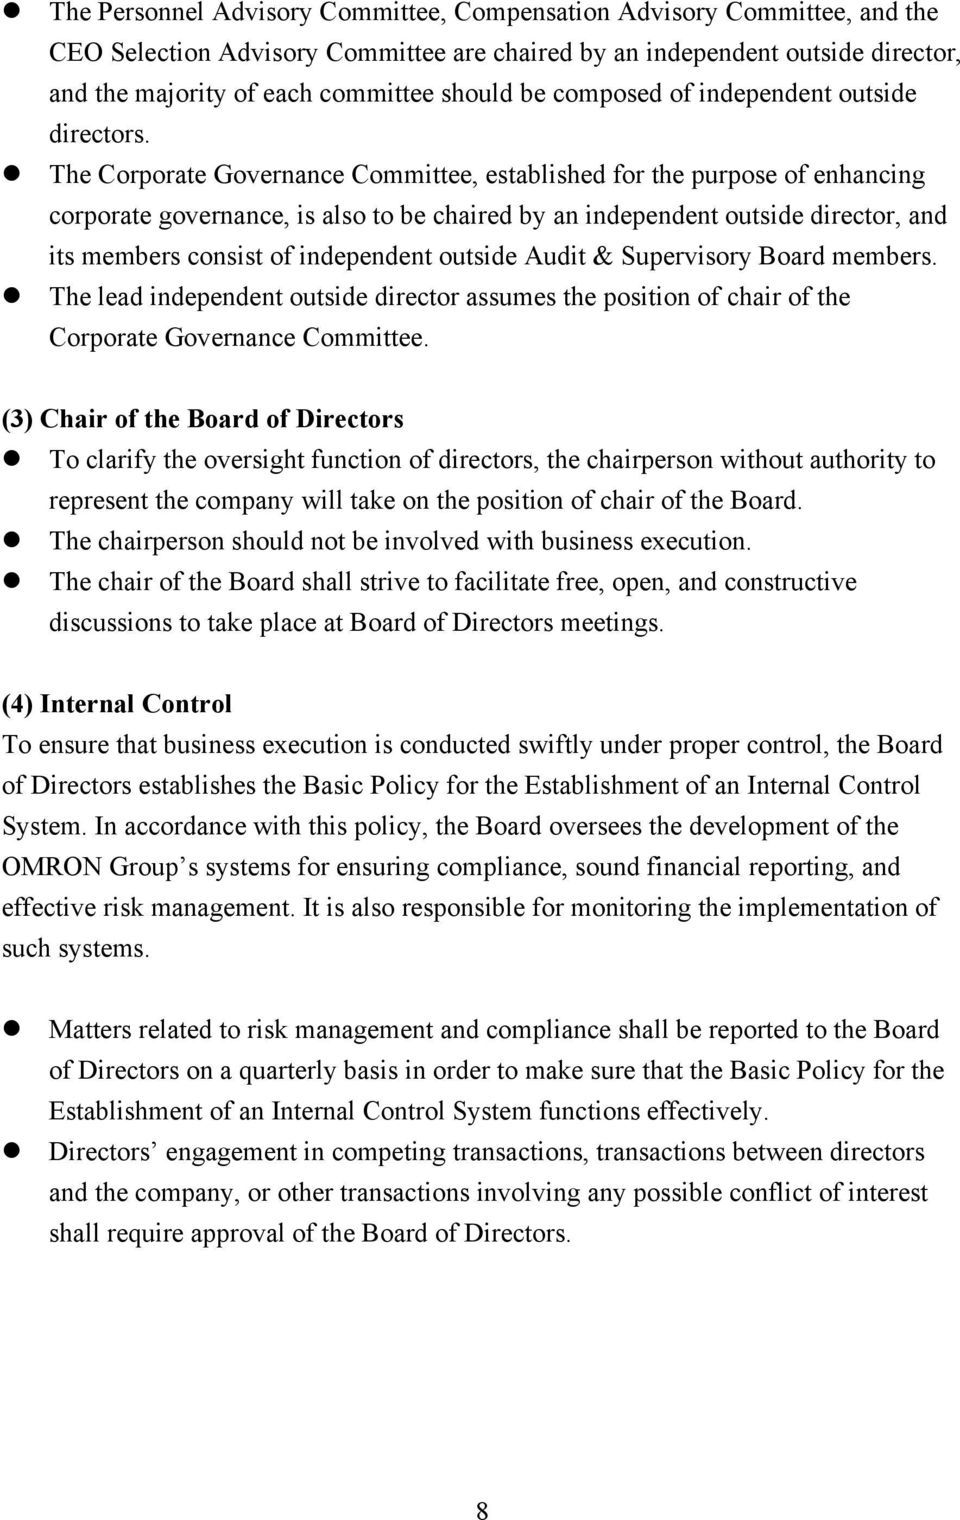 The Corporate Governance Committee, established for the purpose of enhancing corporate governance, is also to be chaired by an independent outside director, and its members consist of independent